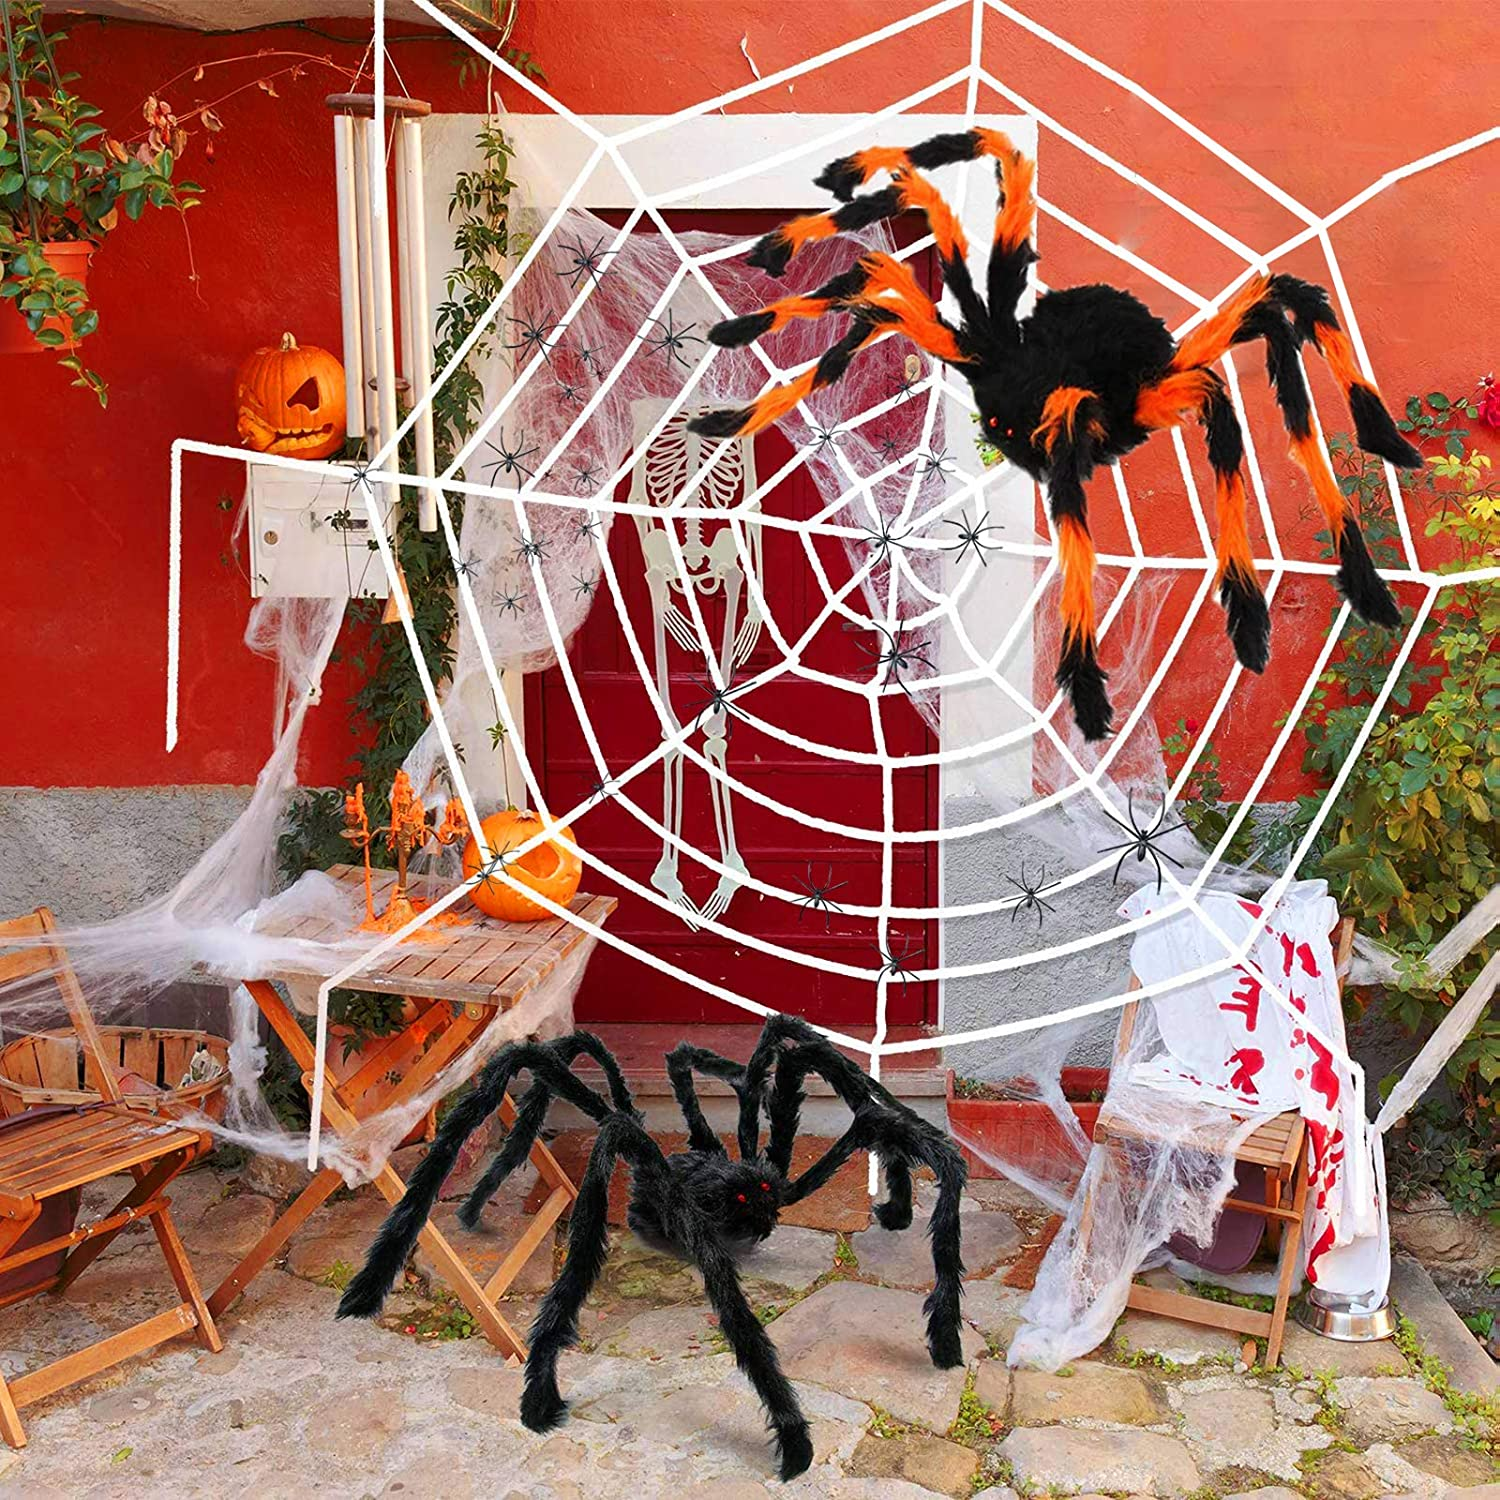 """Spider Web Outdoor Halloween Spider Web Decorations 142""""Spider Web Outdoor +2 Giant Spiders Fake Spiders Cotton-Fleece 1.5""""x20pcs Small Spiders Set for Halloween Outdoor Yard Garden Lawn Decorations"""